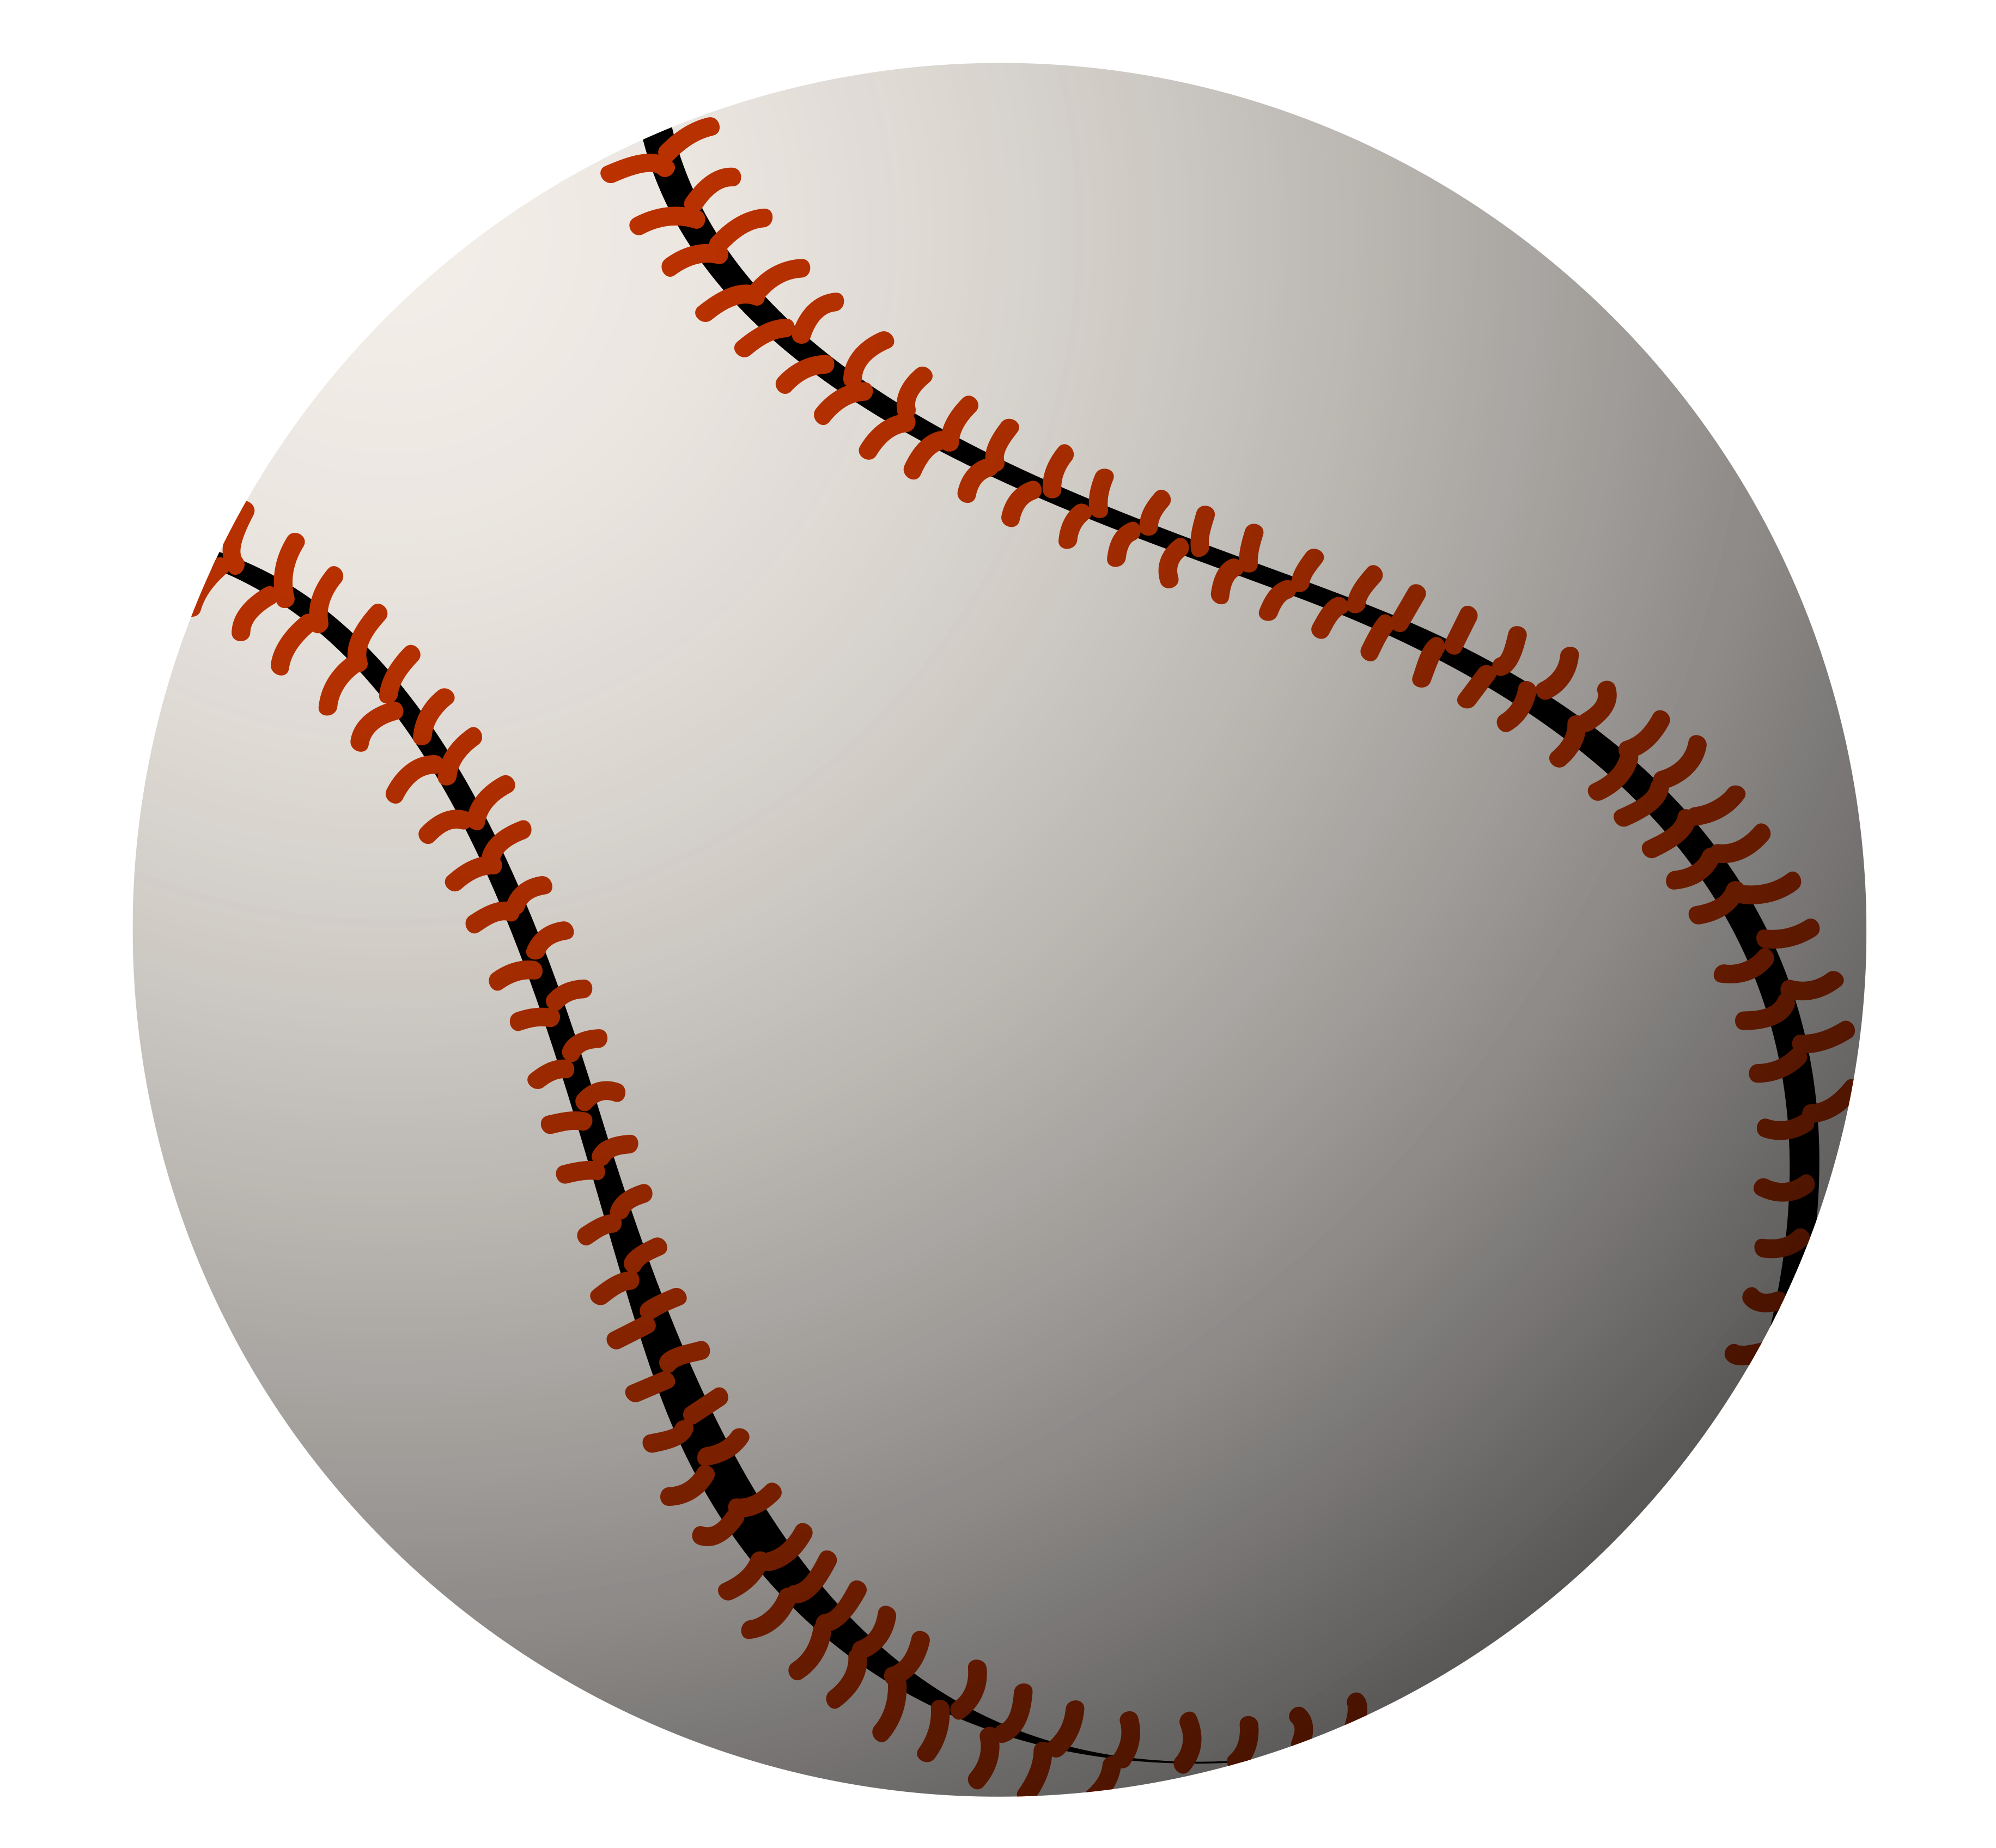 svg royalty free library Ball png clipart image. Baseball clip frame